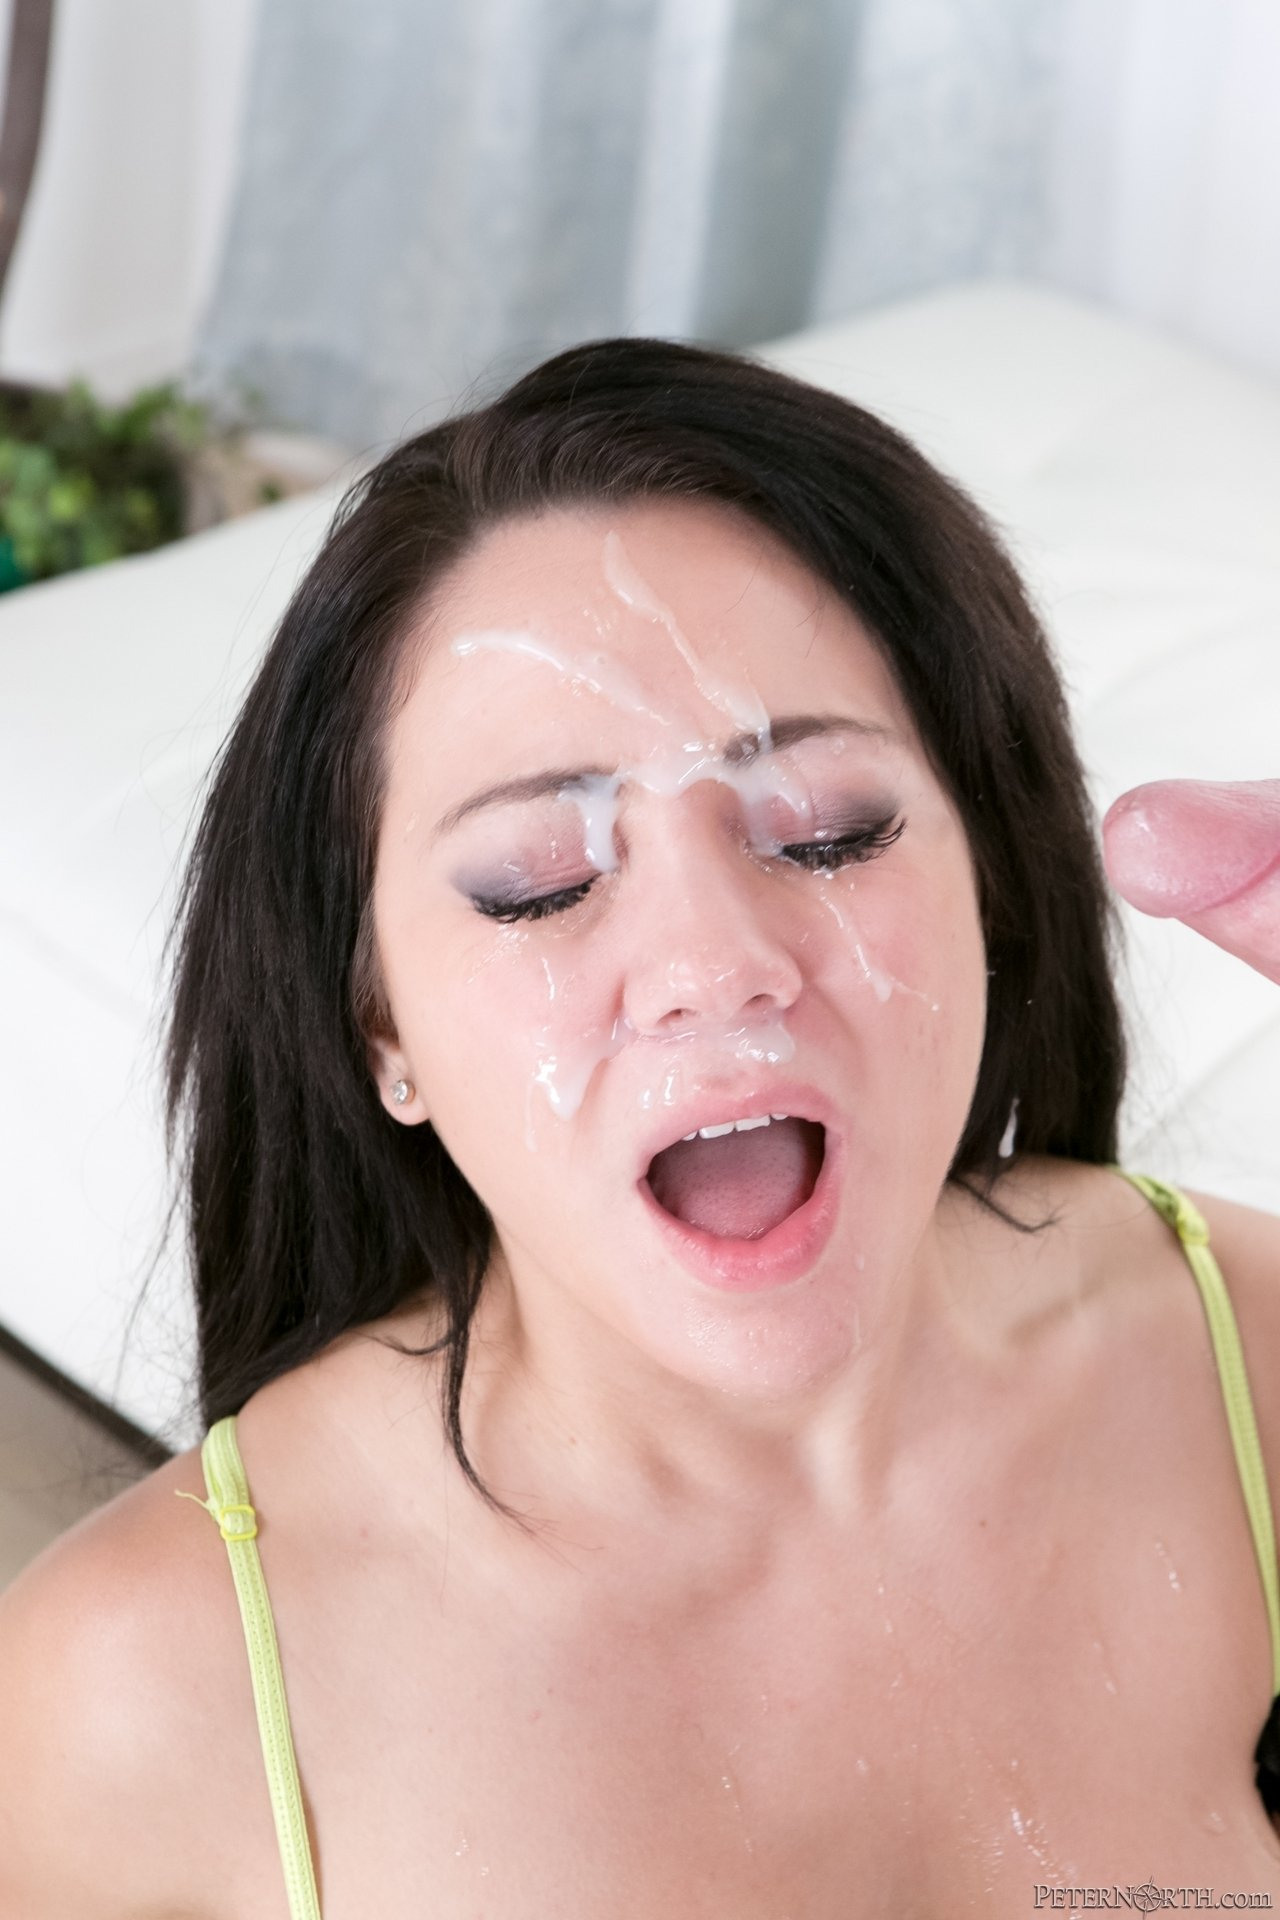 Xxx milf anal pics Mom boss and son secratory cheat sex vedios